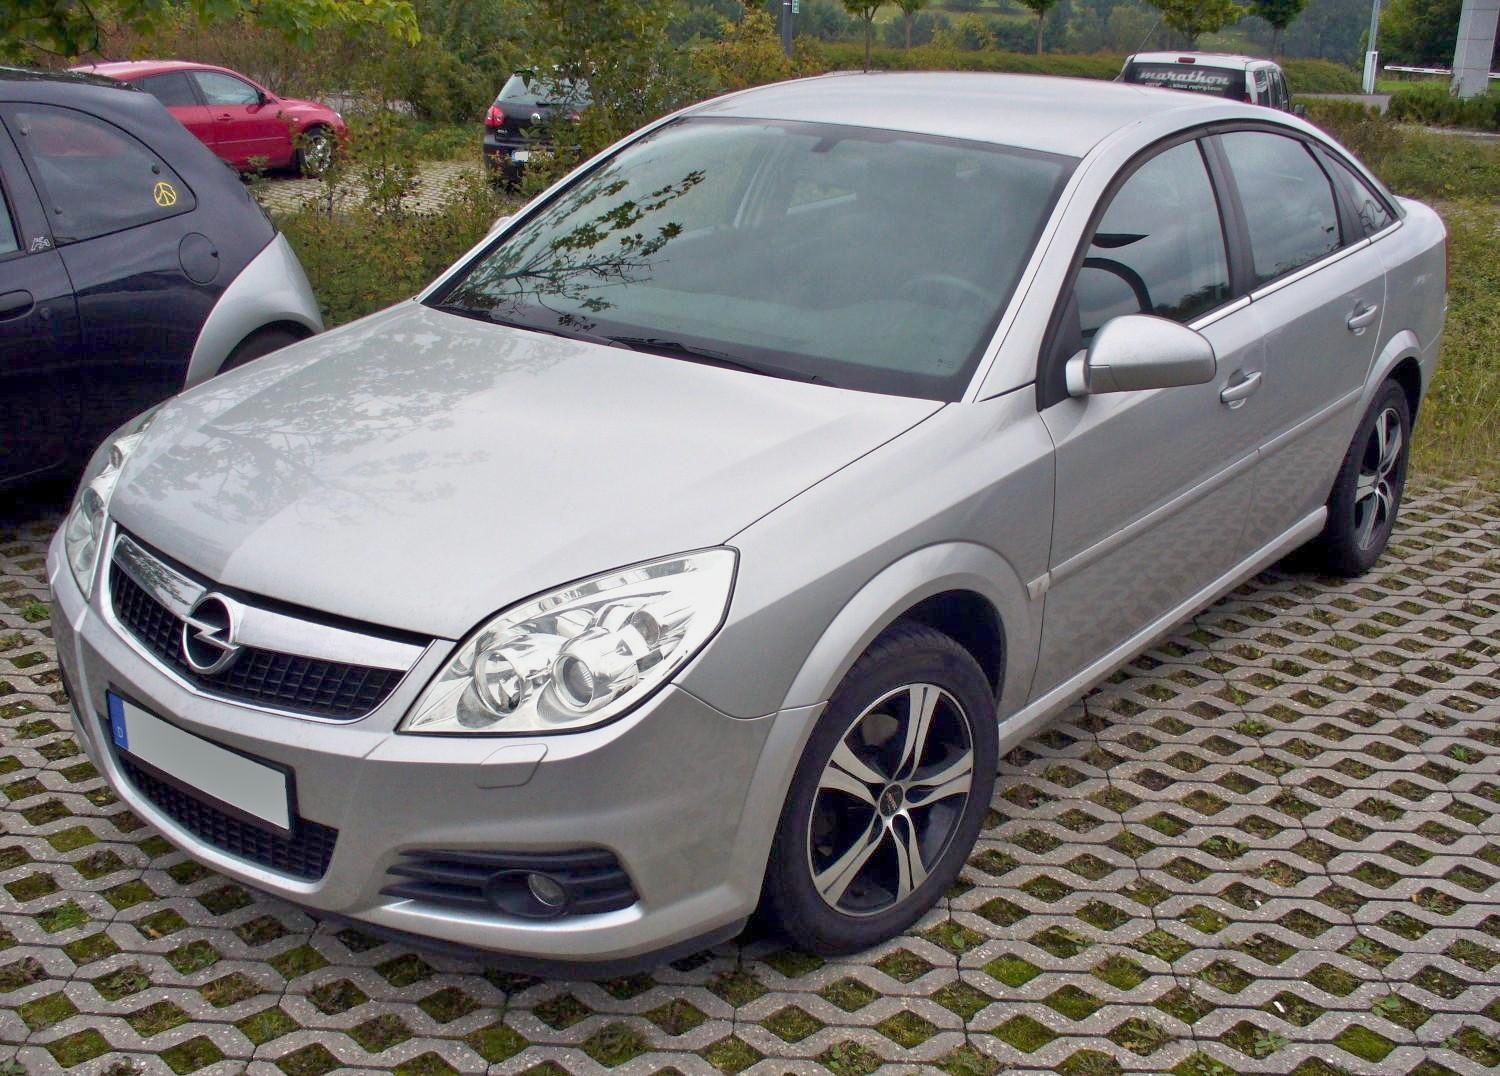 file opel vectra c gts facelift starsilber jpg wikimedia. Black Bedroom Furniture Sets. Home Design Ideas